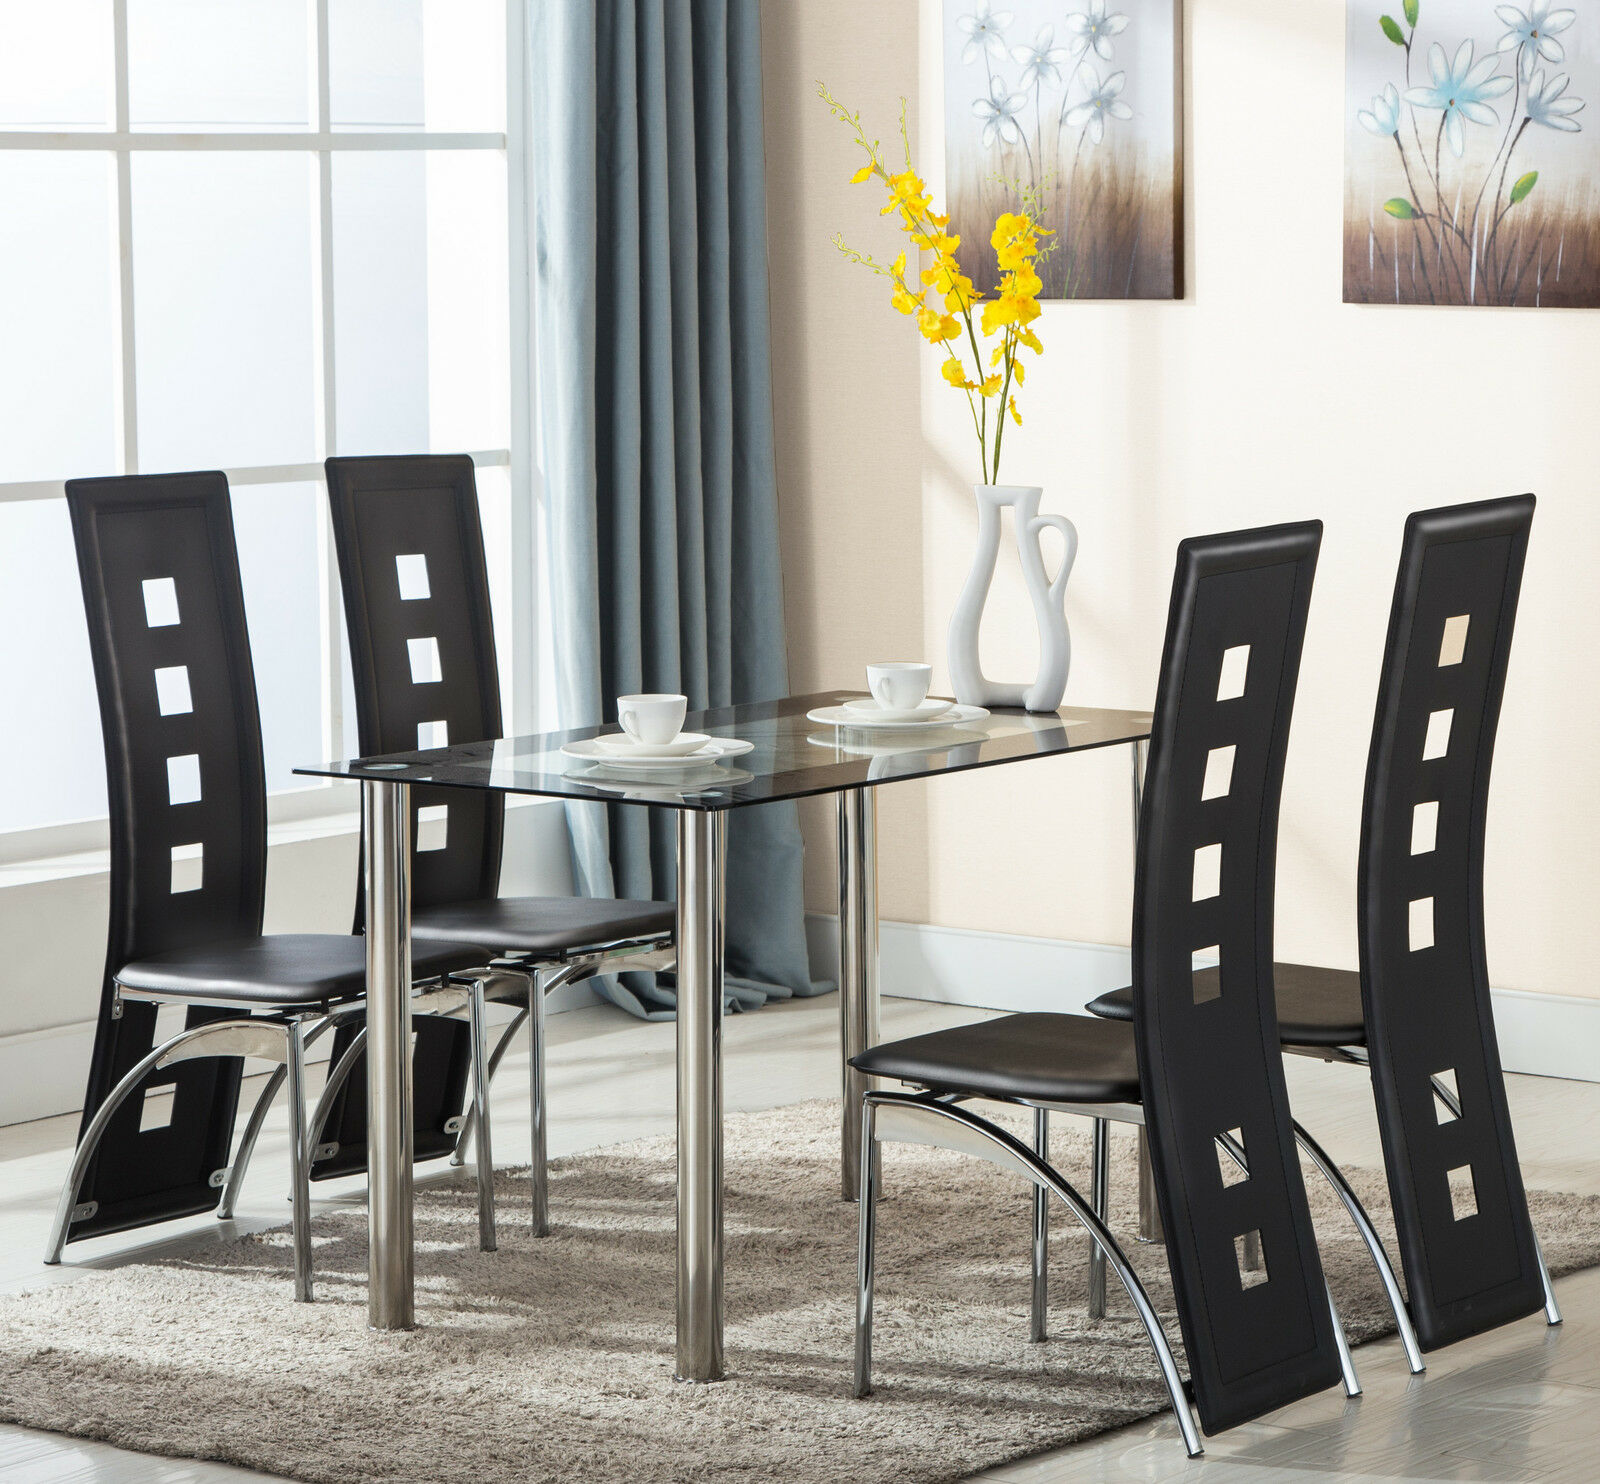 Room And Board Dining Chairs: 5 Piece Set 4 Leather Chairs Dining Table Kitchen Room